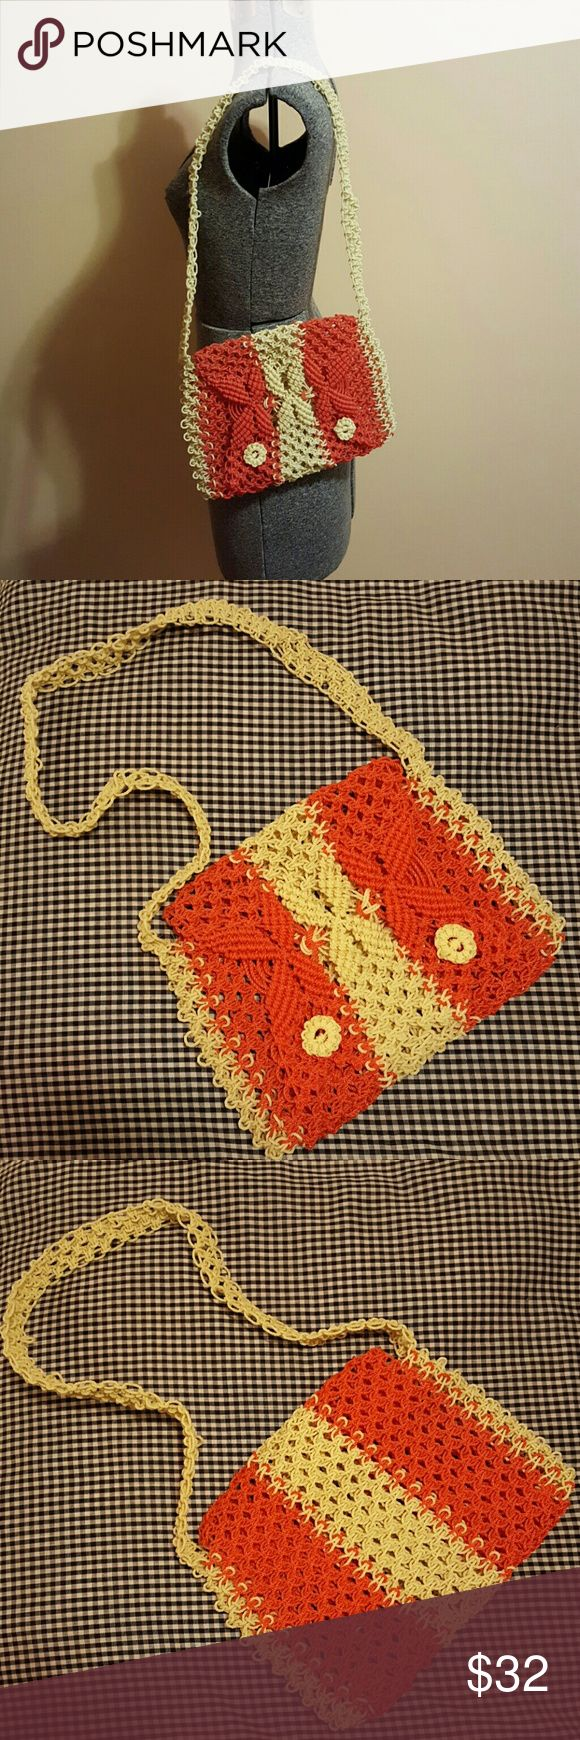 Vintage Red and Cream Crocheted Purse Vintage homemade orangish red and cream shoulder bag. Crocheted with a rigid waxy cord material. Has a single pocket with 2 floral buttons that keep flap closed. Measures about 11.5 x 9 inches. Strap measures 13 inches at its longest. Fantastic condition without any notable flaws. Vintage Bags Shoulder Bags